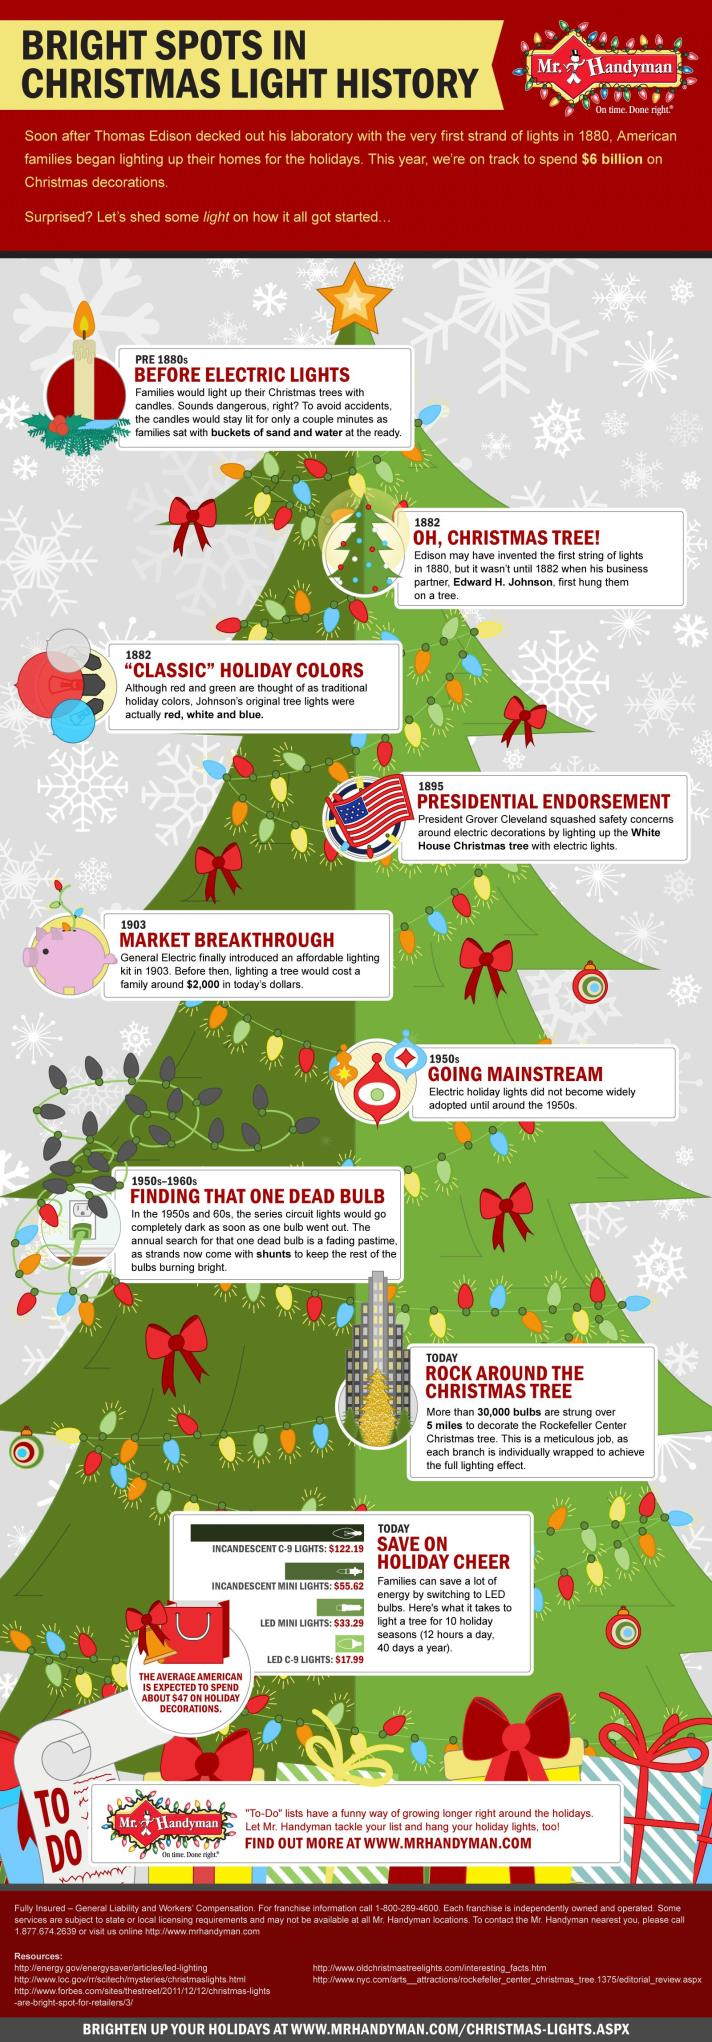 Infographic of Christmas Light History